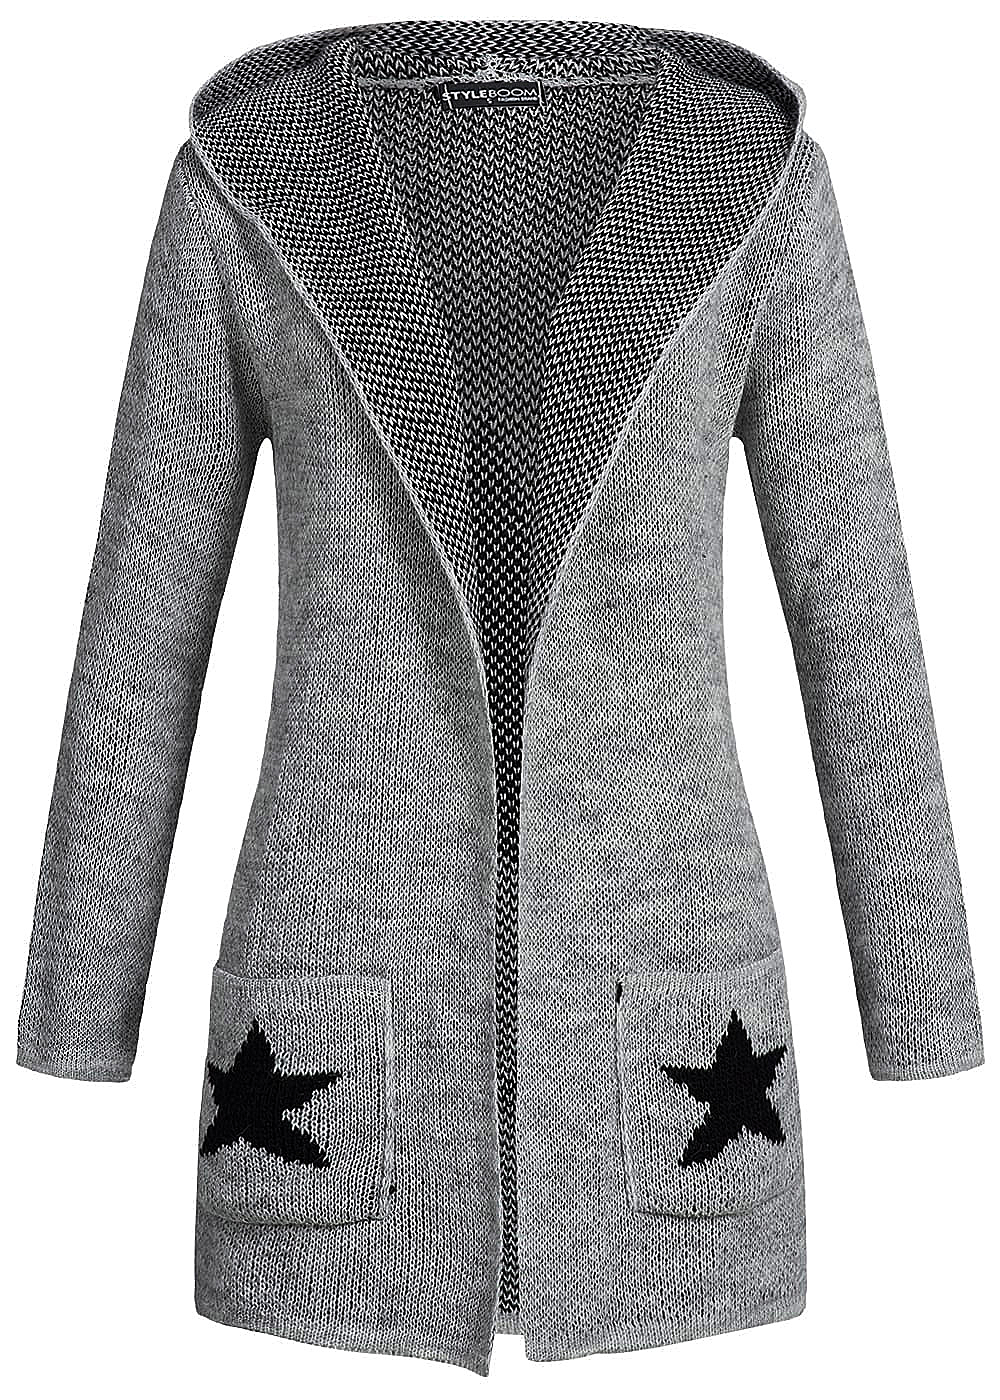 styleboom fashion cardigan mit kapuze sterne 2 taschen i love peace. Black Bedroom Furniture Sets. Home Design Ideas